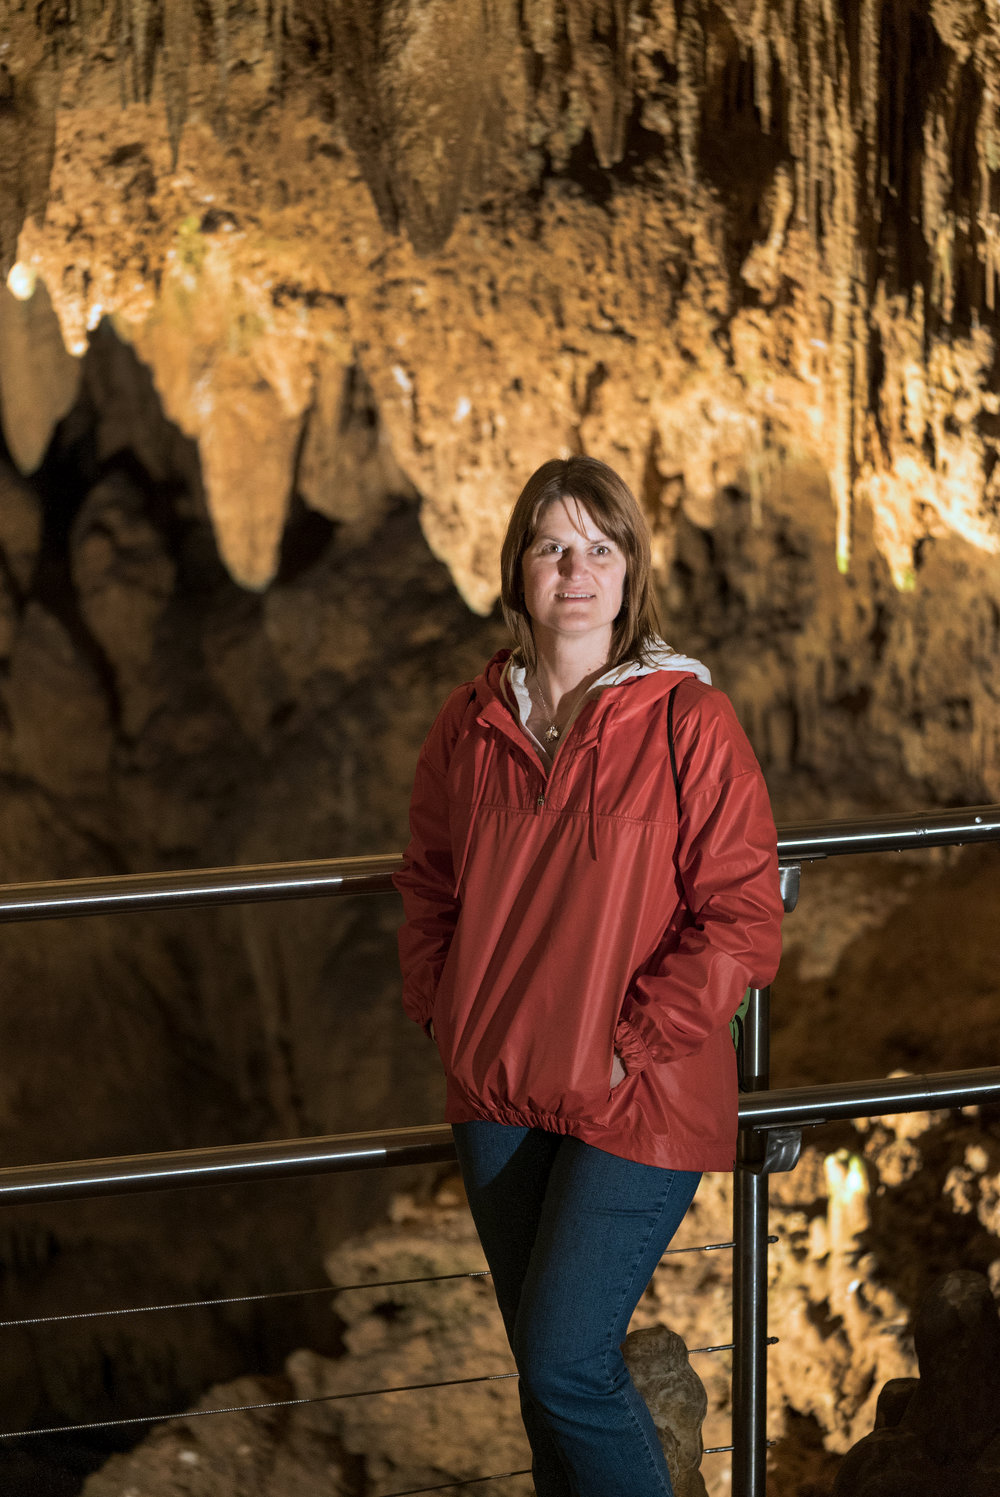 Wife at Luray Caverns